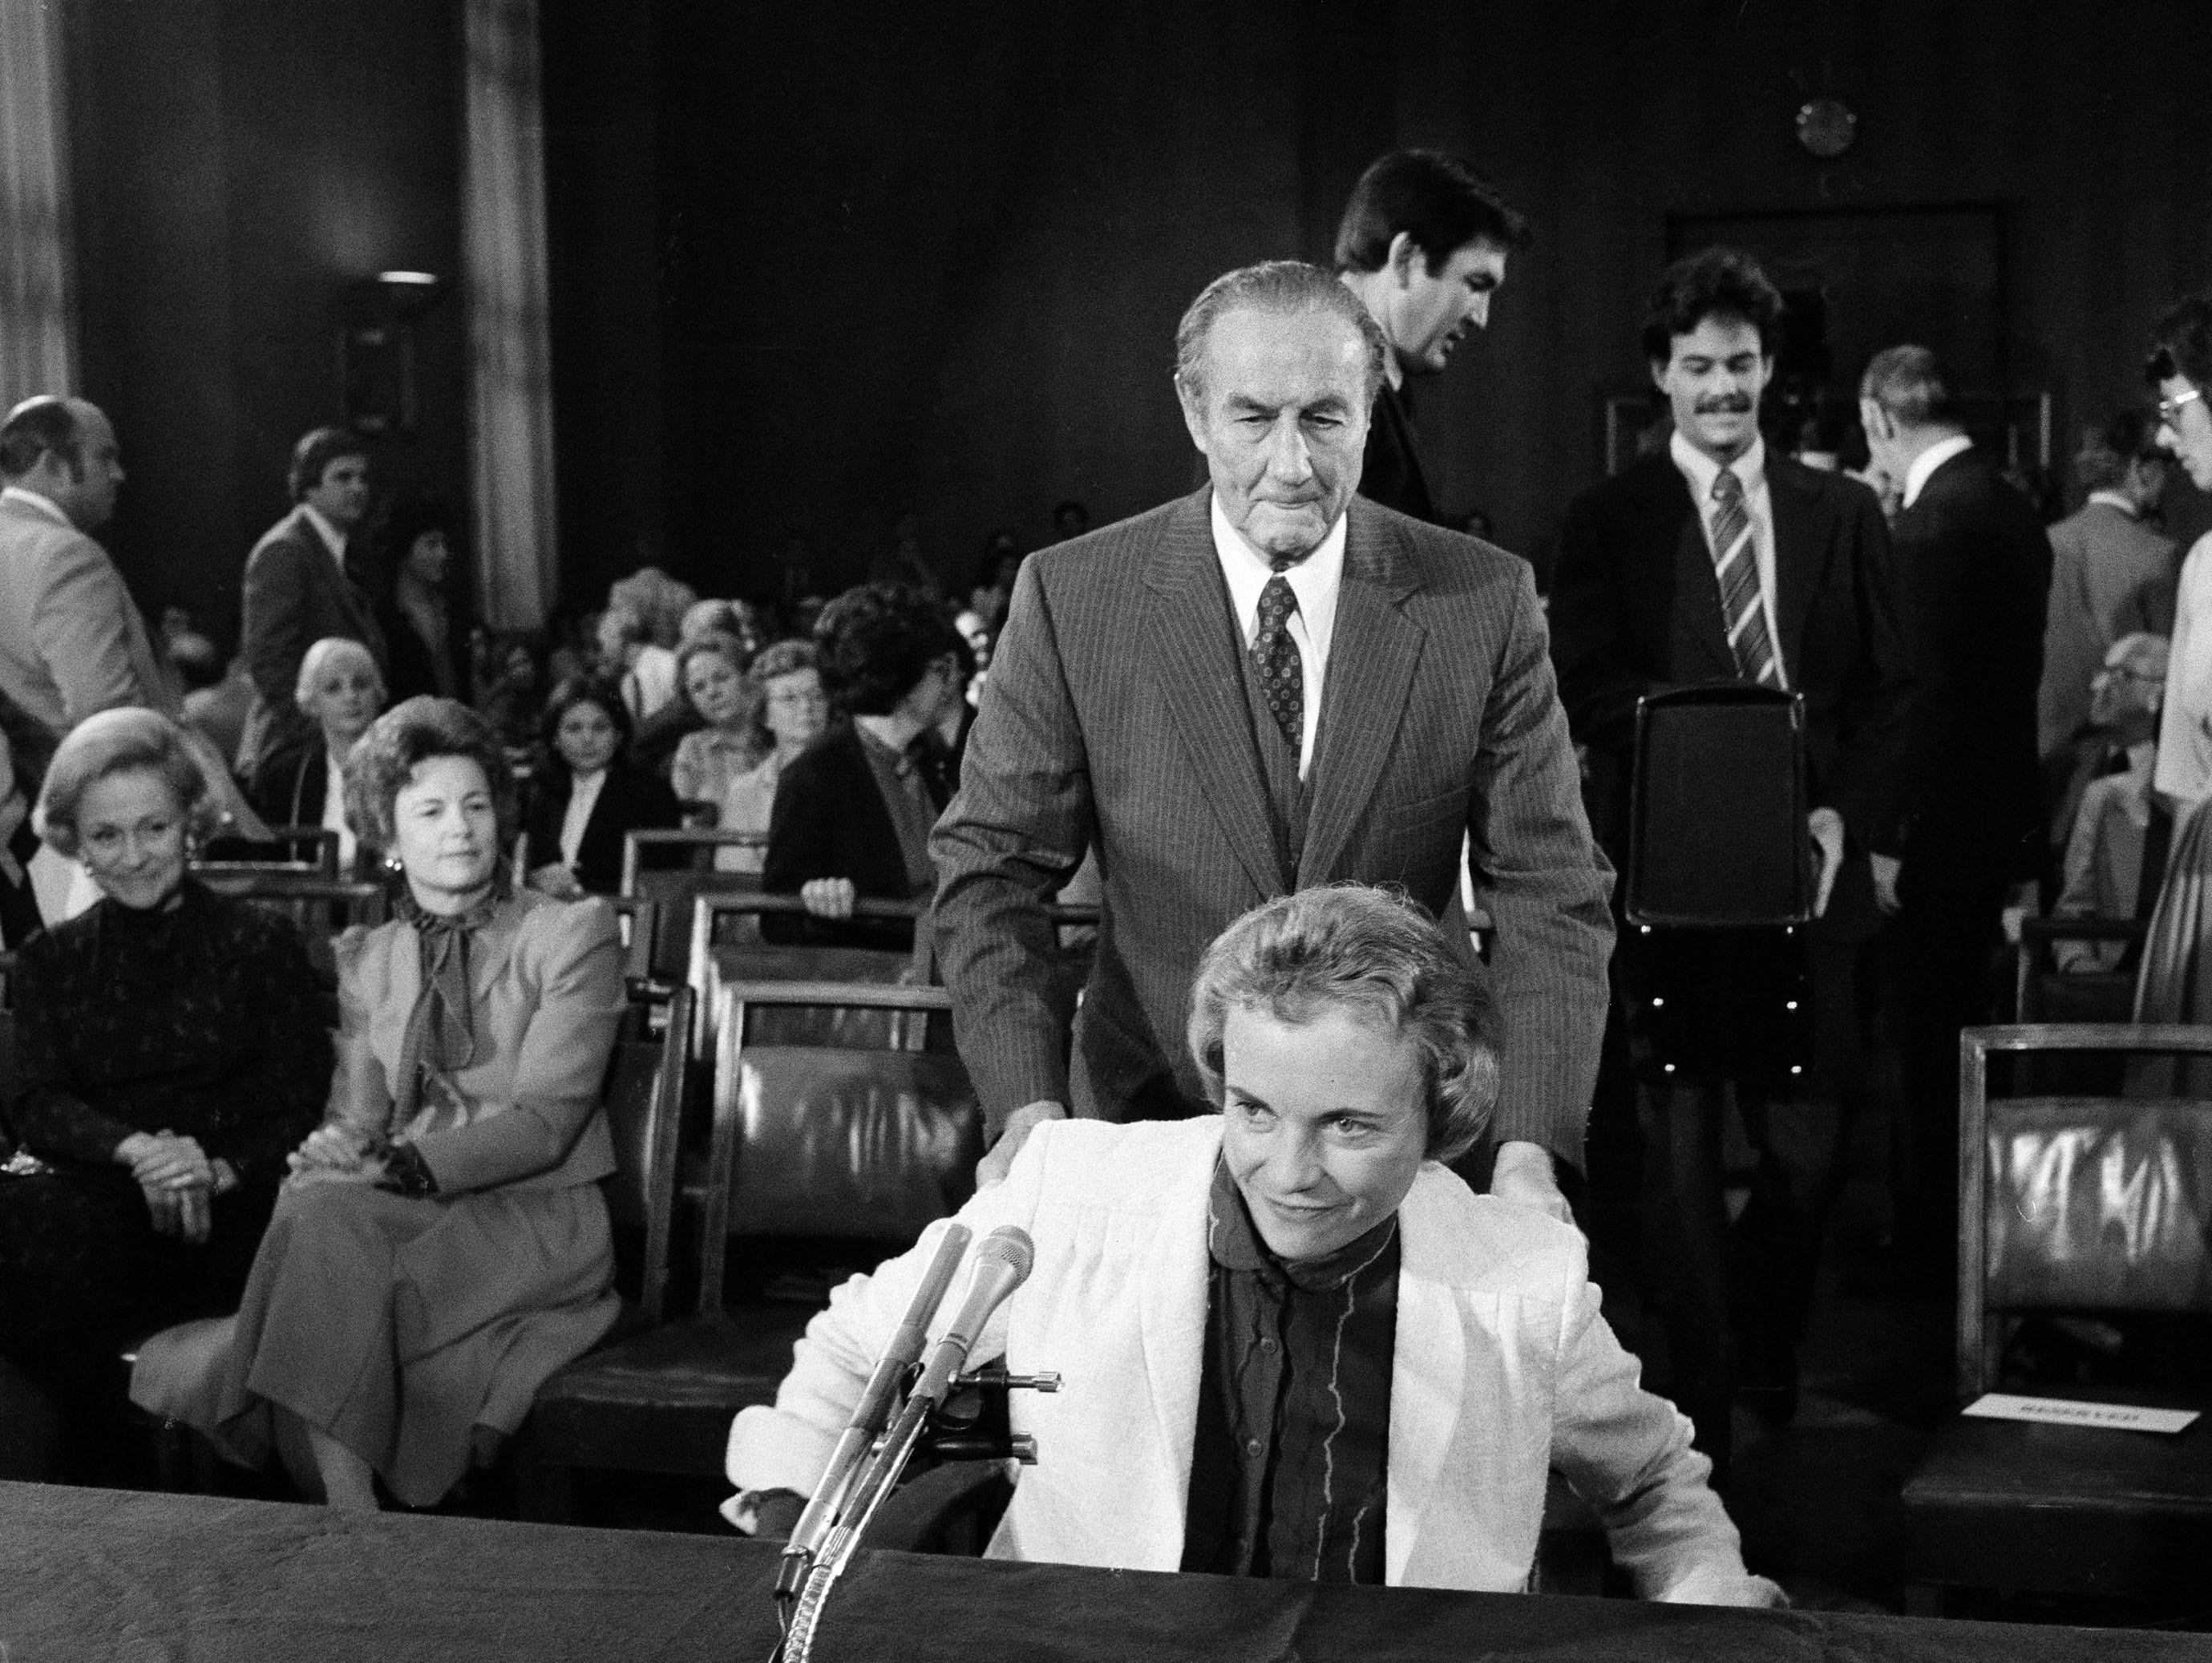 Chairman of the Senate Judiciary Committee Strom Thurmond, R-S.C., holds the chair for Supreme Court nominee Sandra Day O'Connor as she arrives for the start of her confirmation hearings before his panel, Sept. 10, 1981, on Capitol Hill.